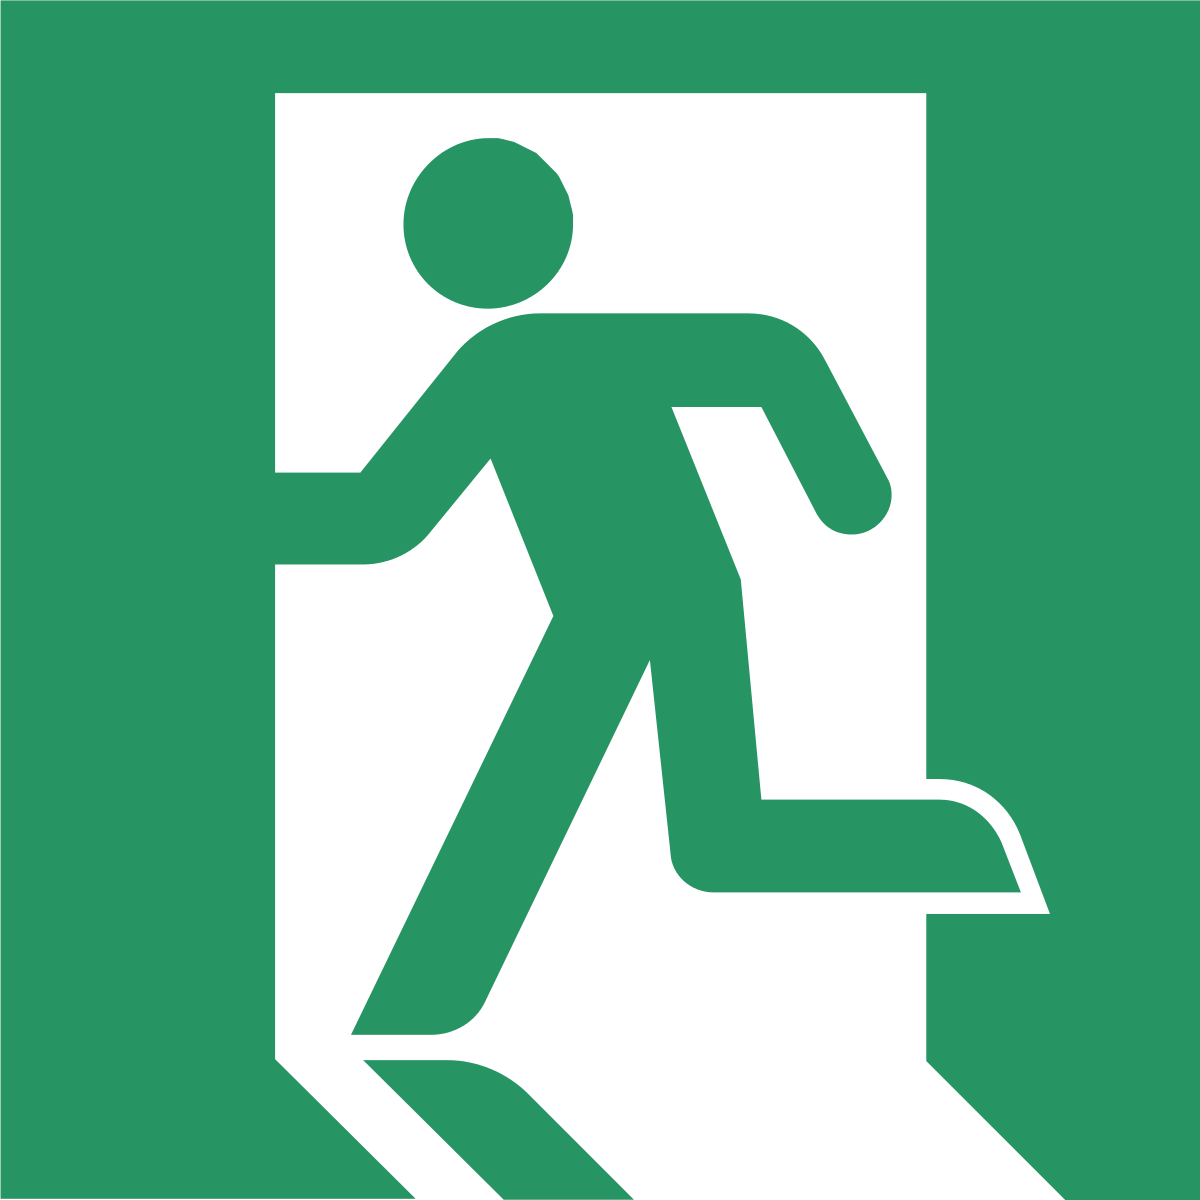 Exit sign png. Wikipedia